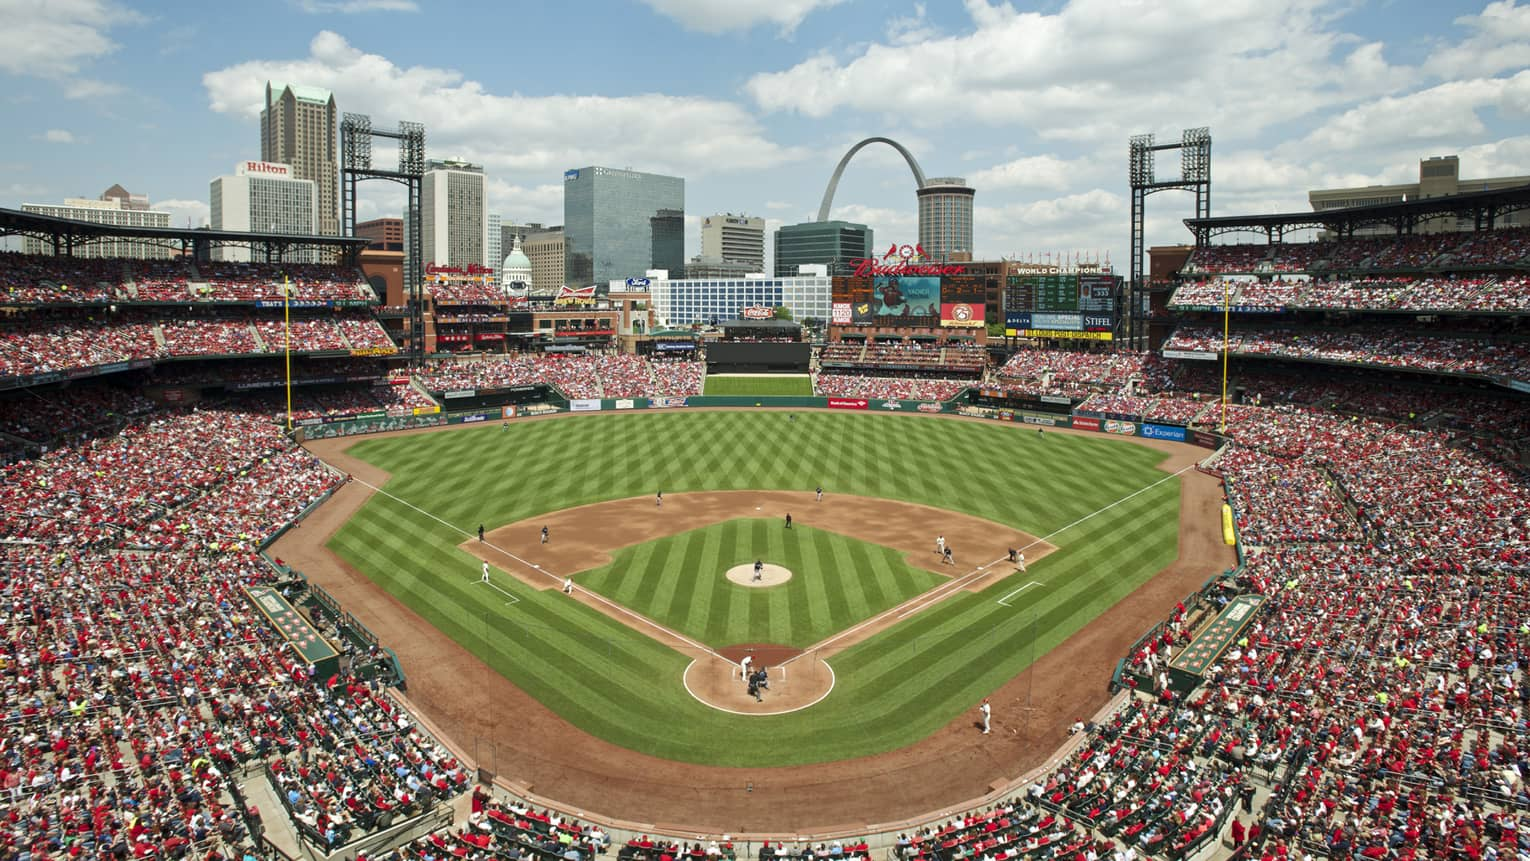 Aerial view of Busch Stadium baseball field, stands packed with crowds